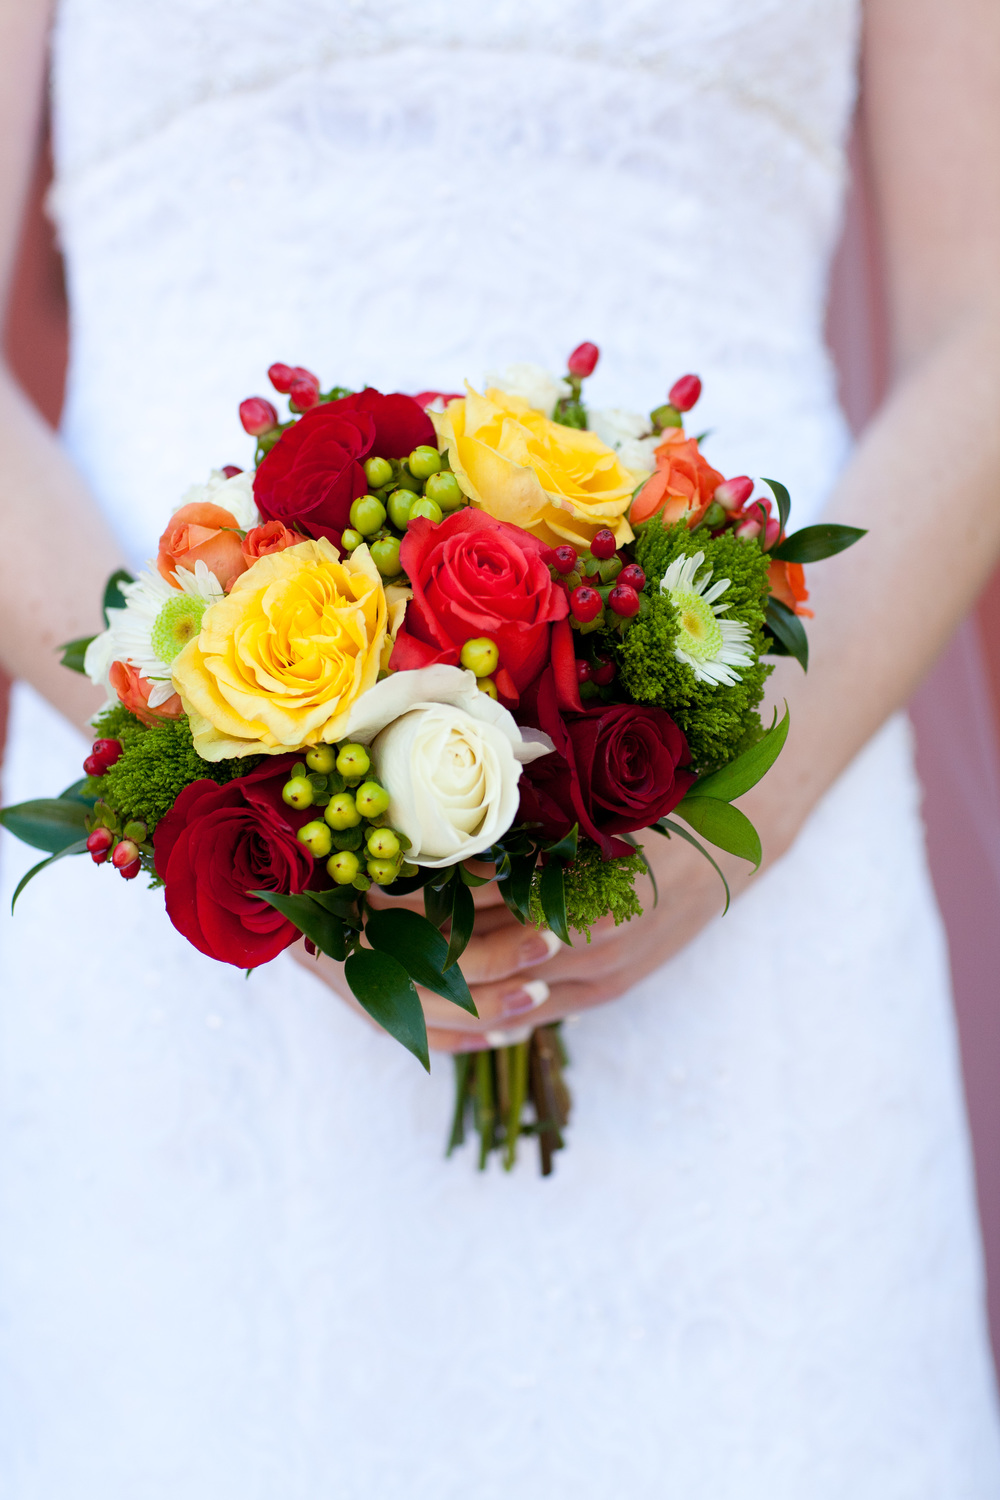 7.  Yellow, orange, red fall color roses